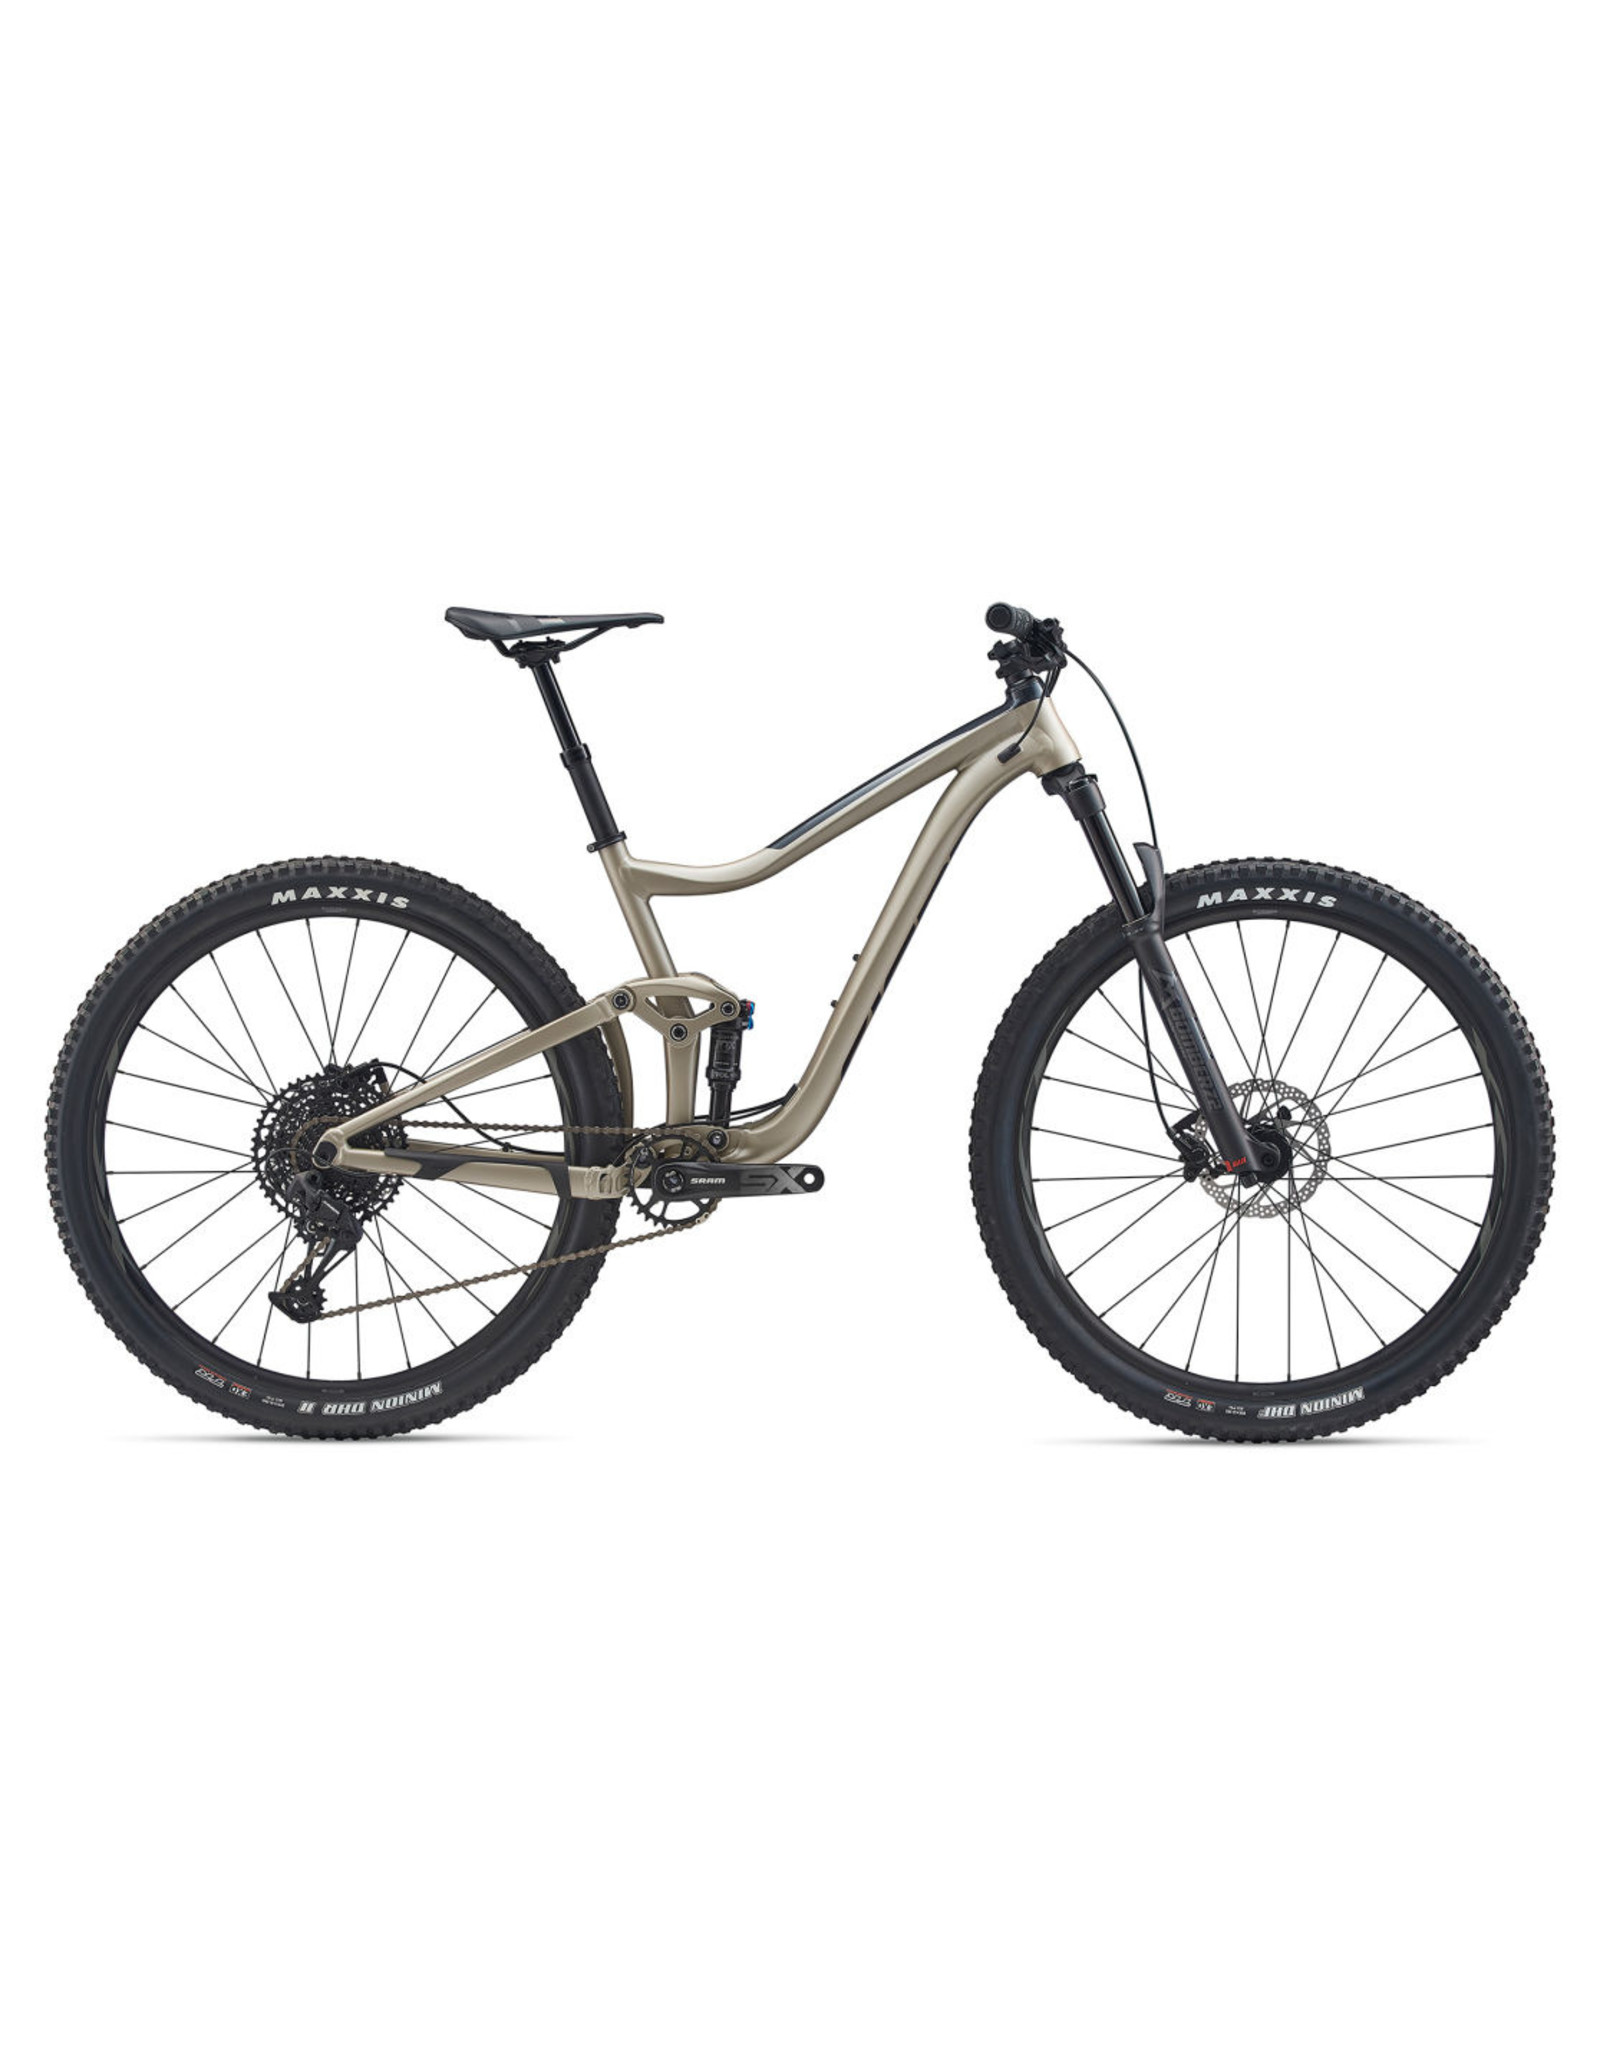 GIANT BICYCLES 2020 Trance 29 3 Sand Beige